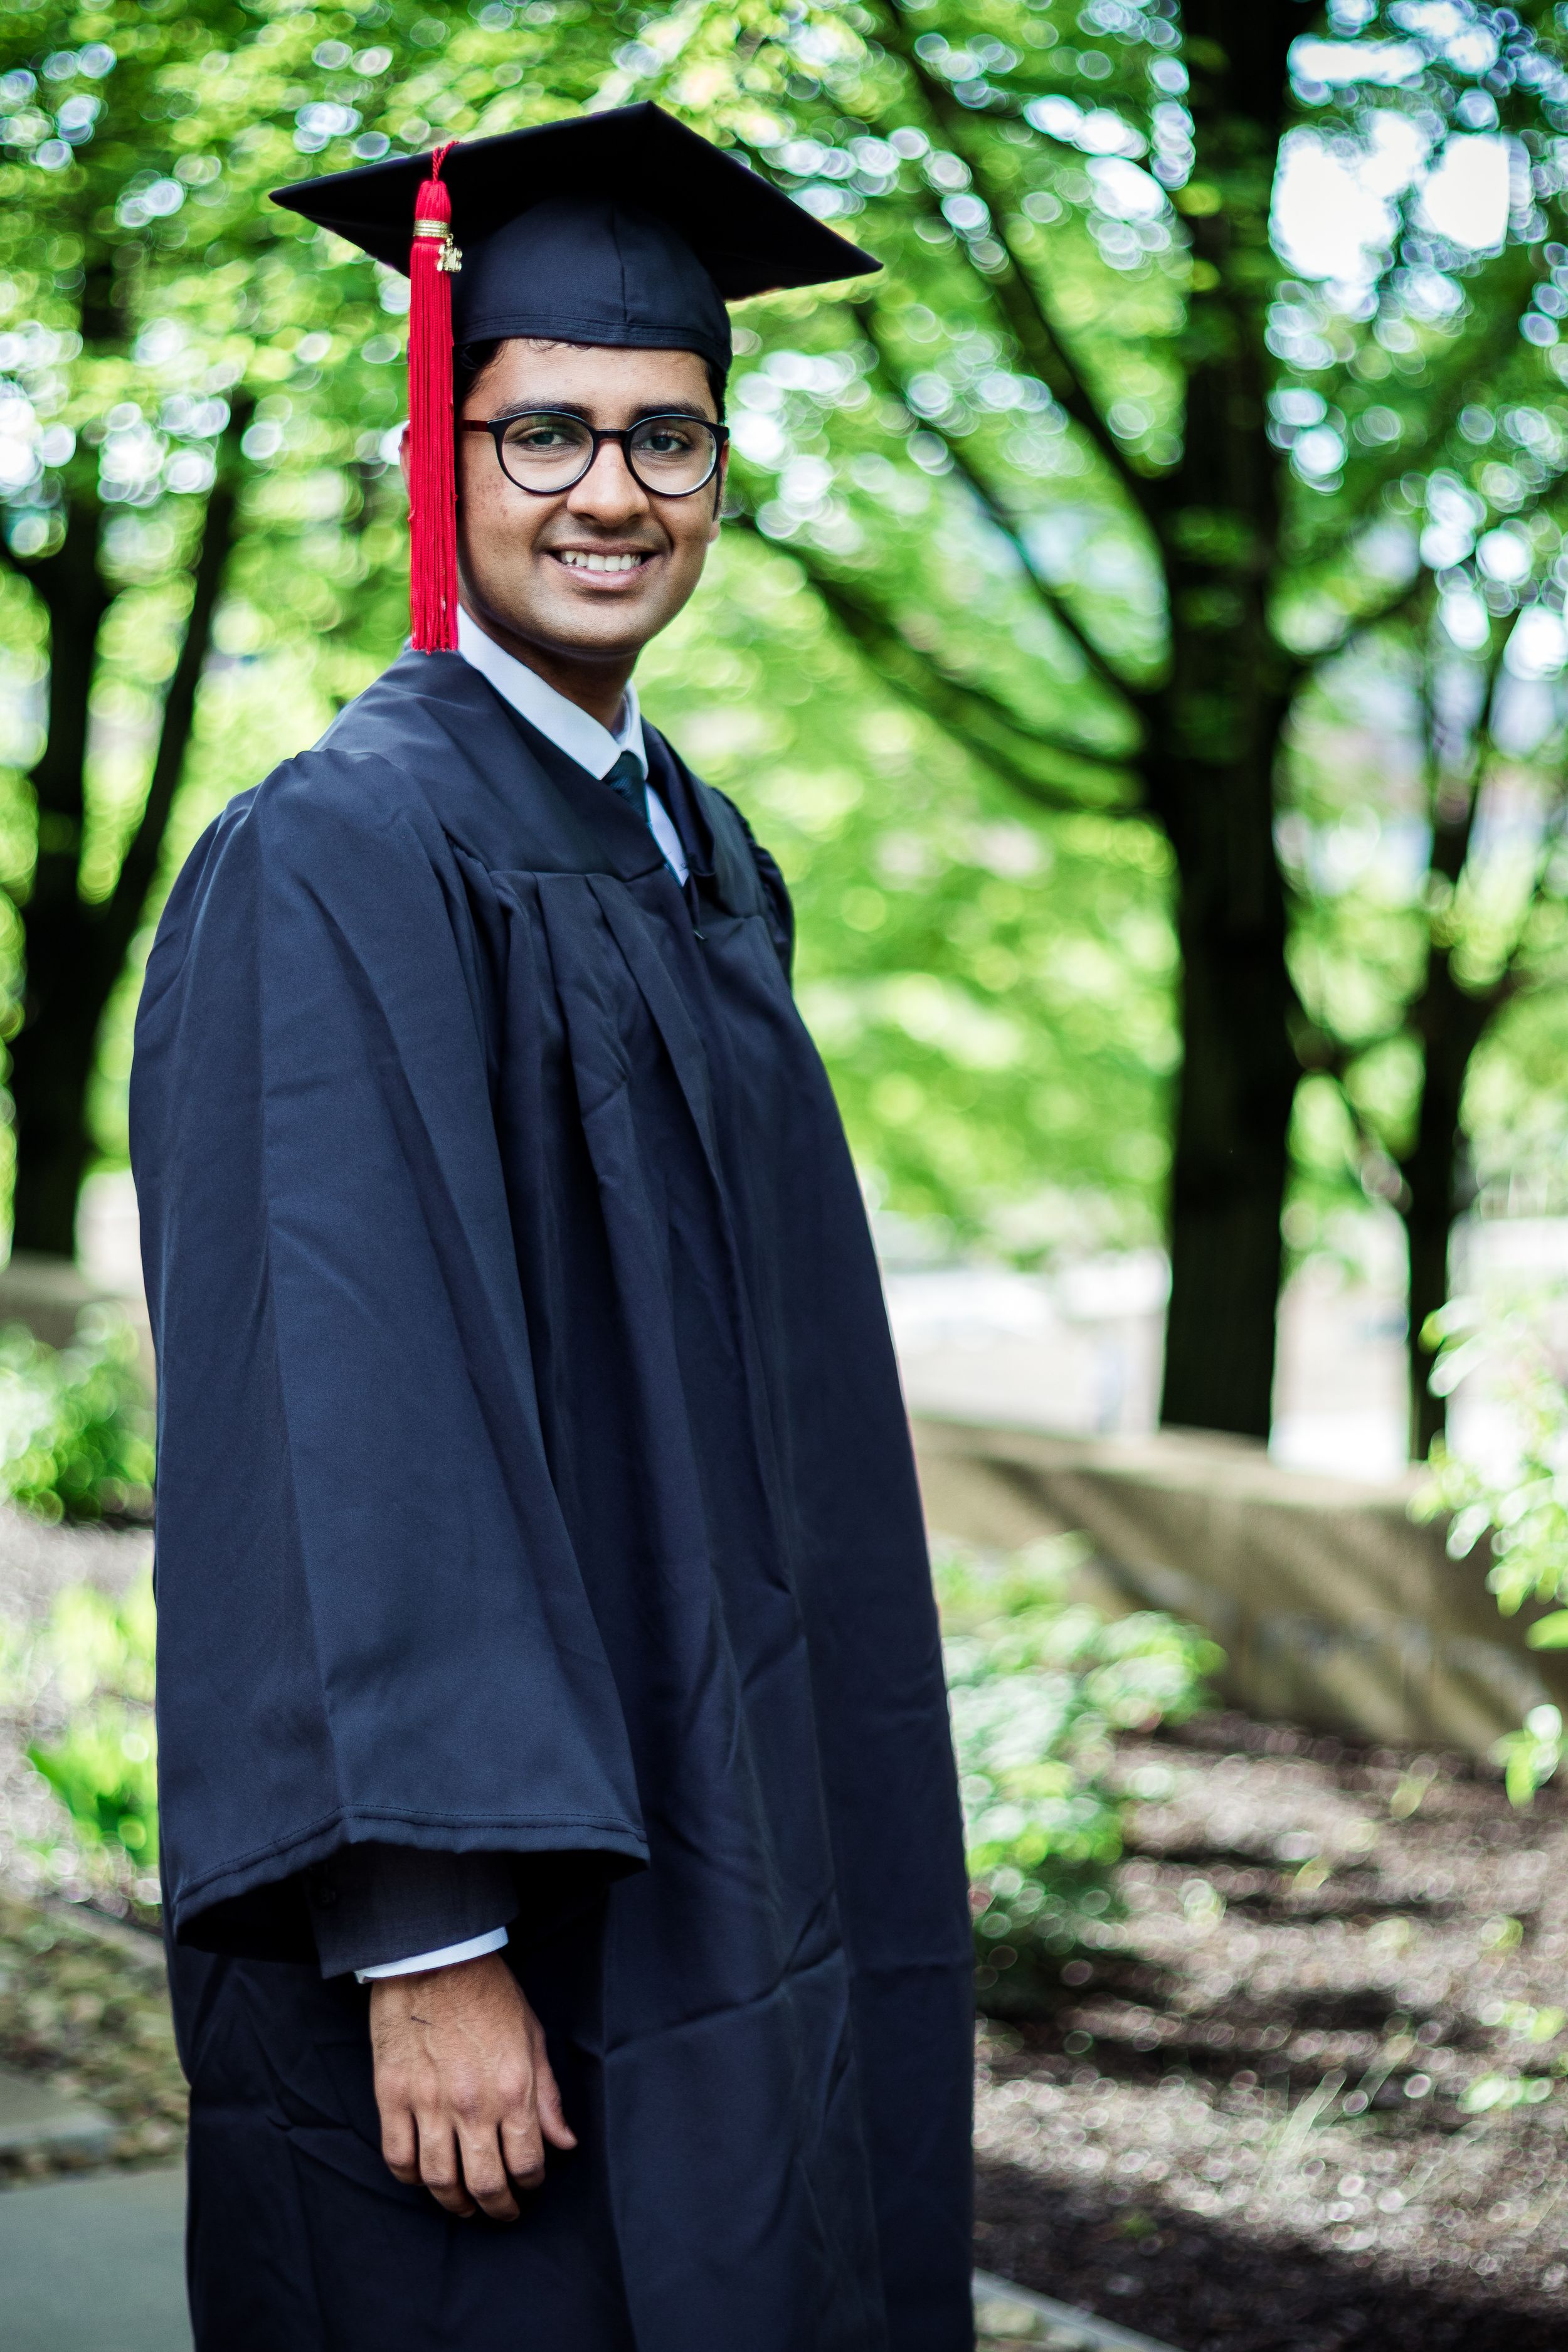 A graduate senior of carnegie mellon university in Pittsburgh PA poses on campus in a graduation cap and graduation gown